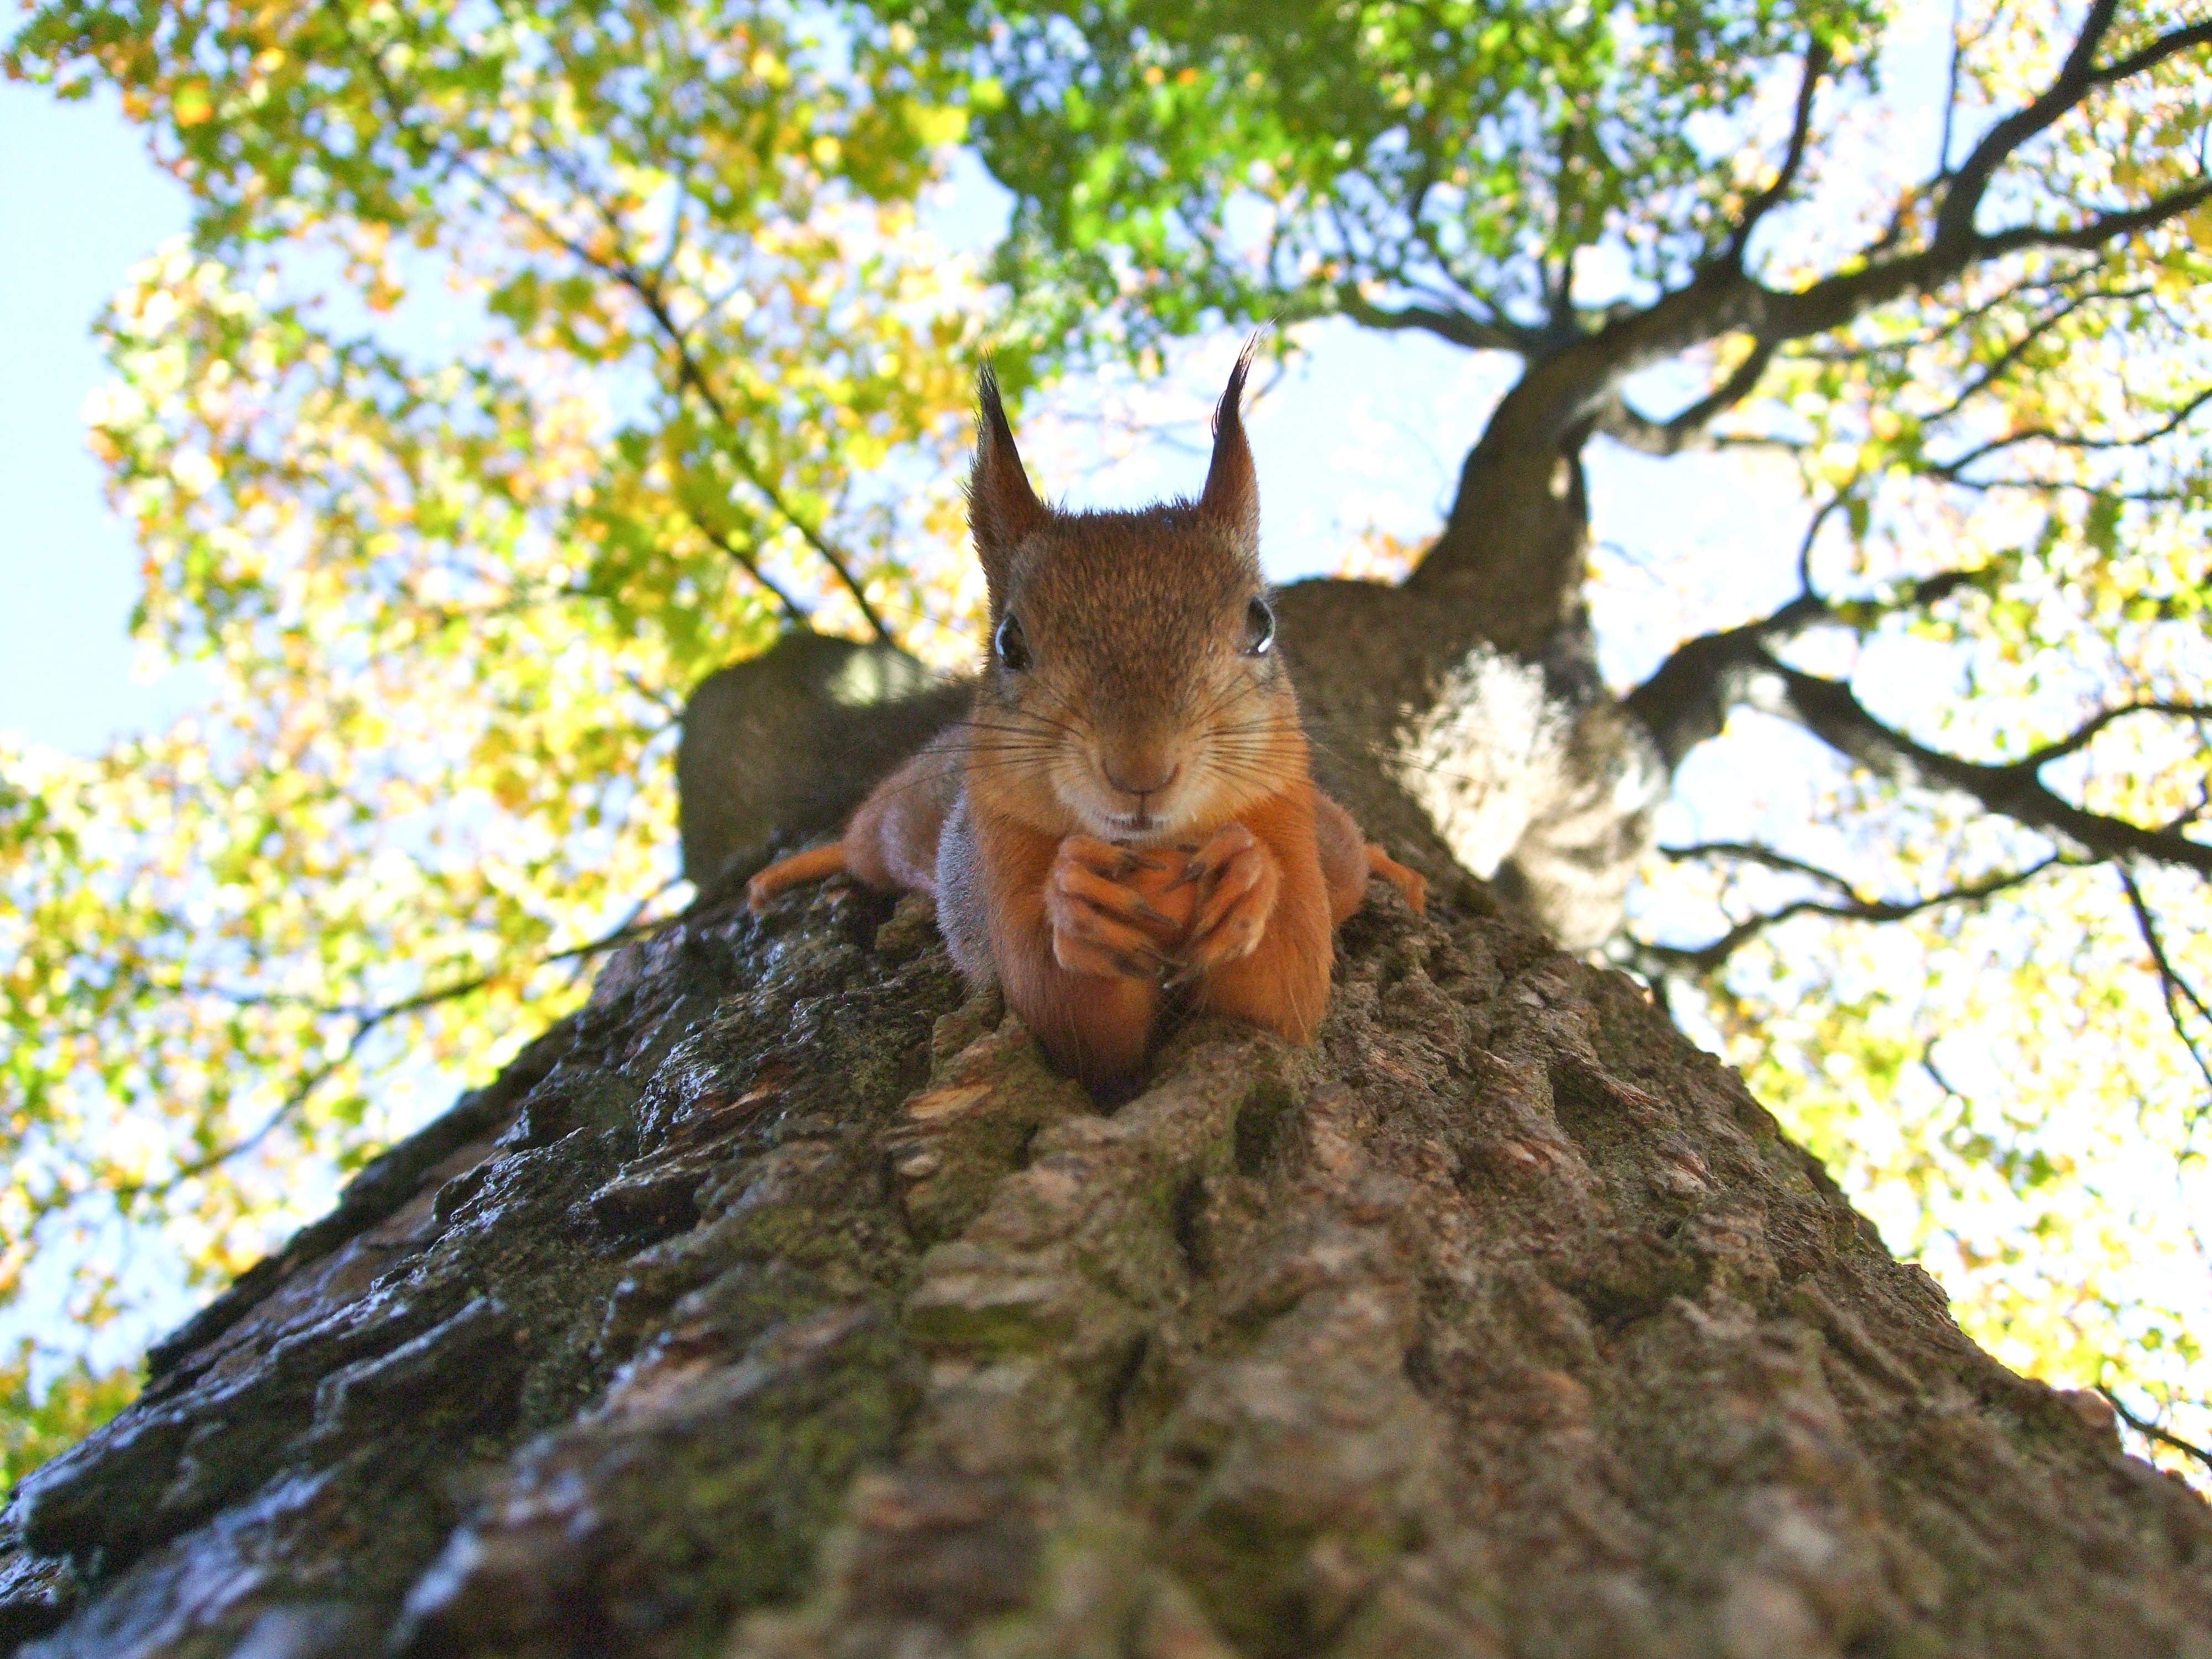 A red squirrel laying on a tree trunk with green branches above it, looking down at the camera with a nut in its paws